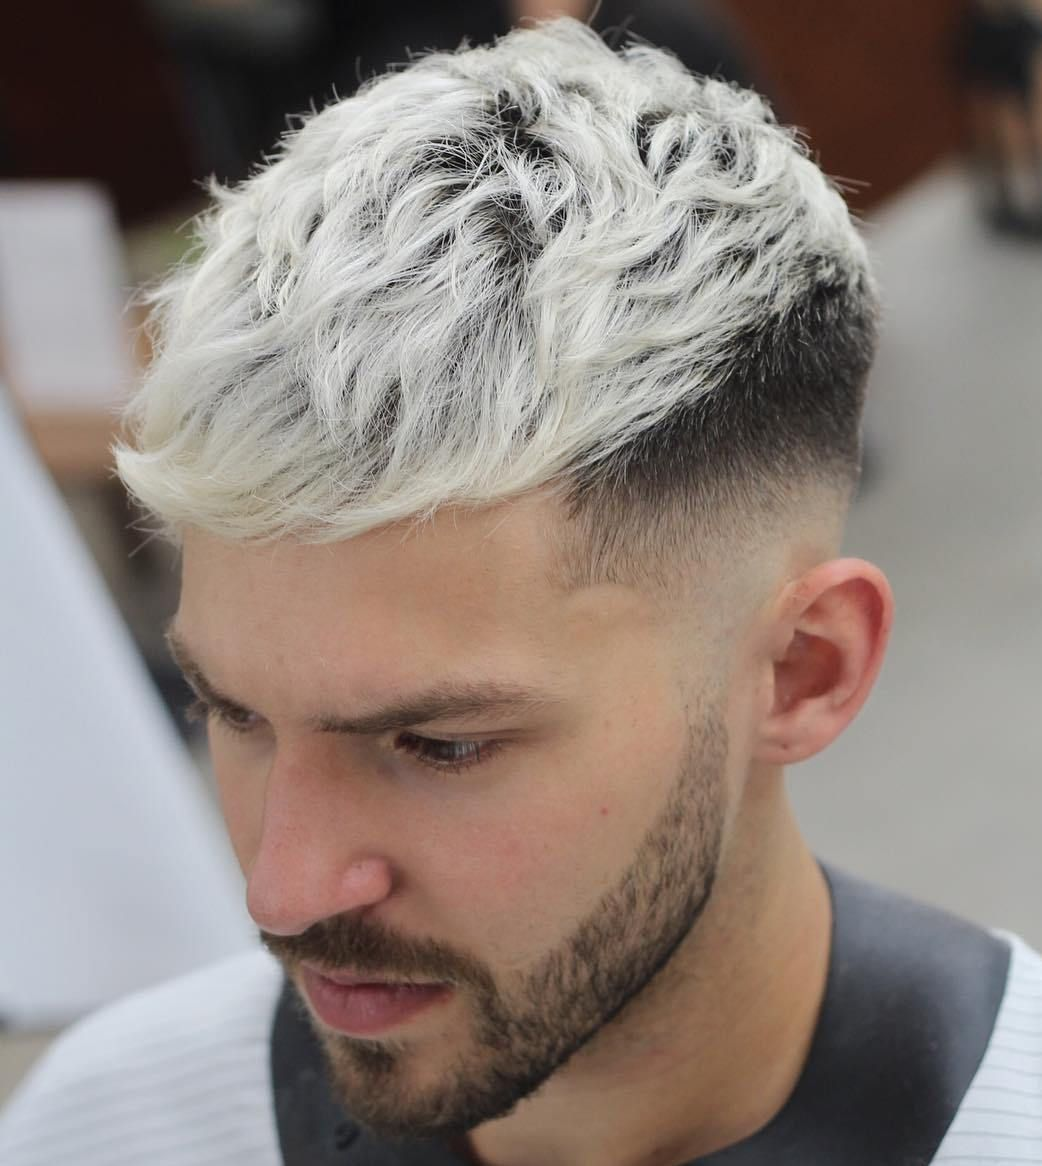 20 Stylish Men S Hipster Haircuts Cabelo Masculino Cores De Cabelo Masculino Cabelo Platinado Masculino